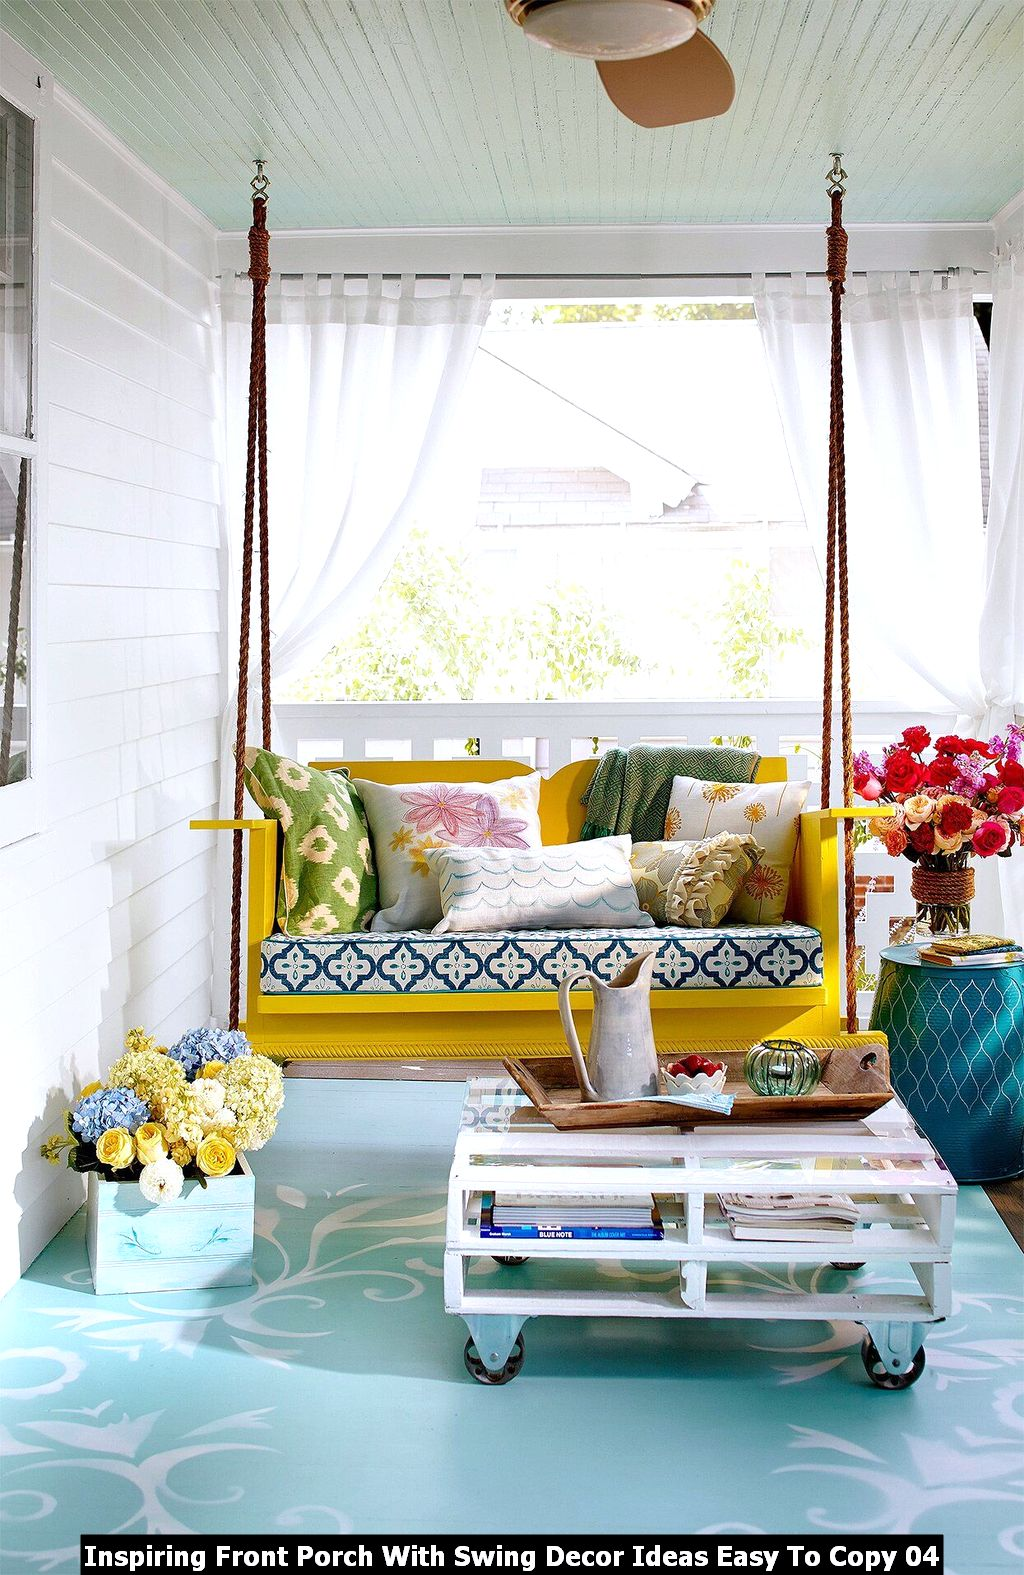 Inspiring Front Porch With Swing Decor Ideas Easy To Copy 04